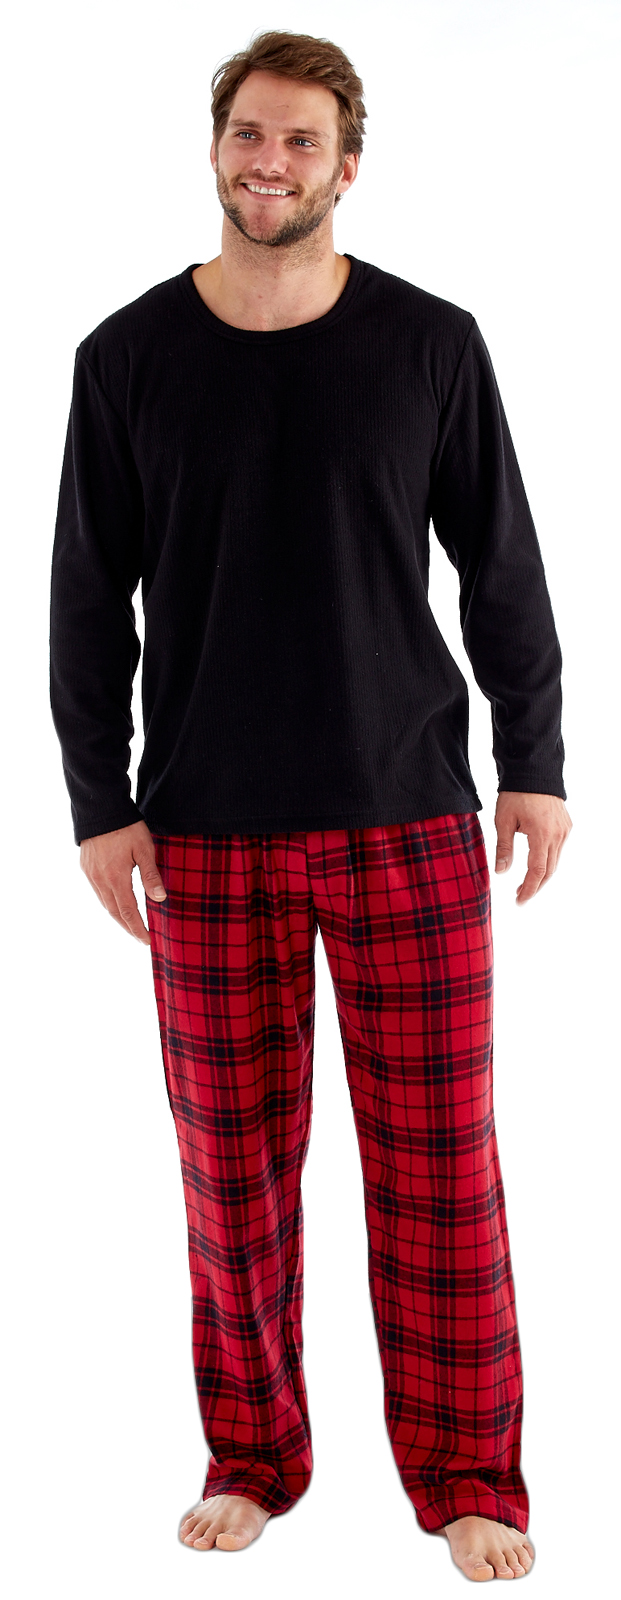 Enjoy free shipping and easy returns every day at Kohl's. Find great deals on Mens Fleece Sleepwear at Kohl's today!